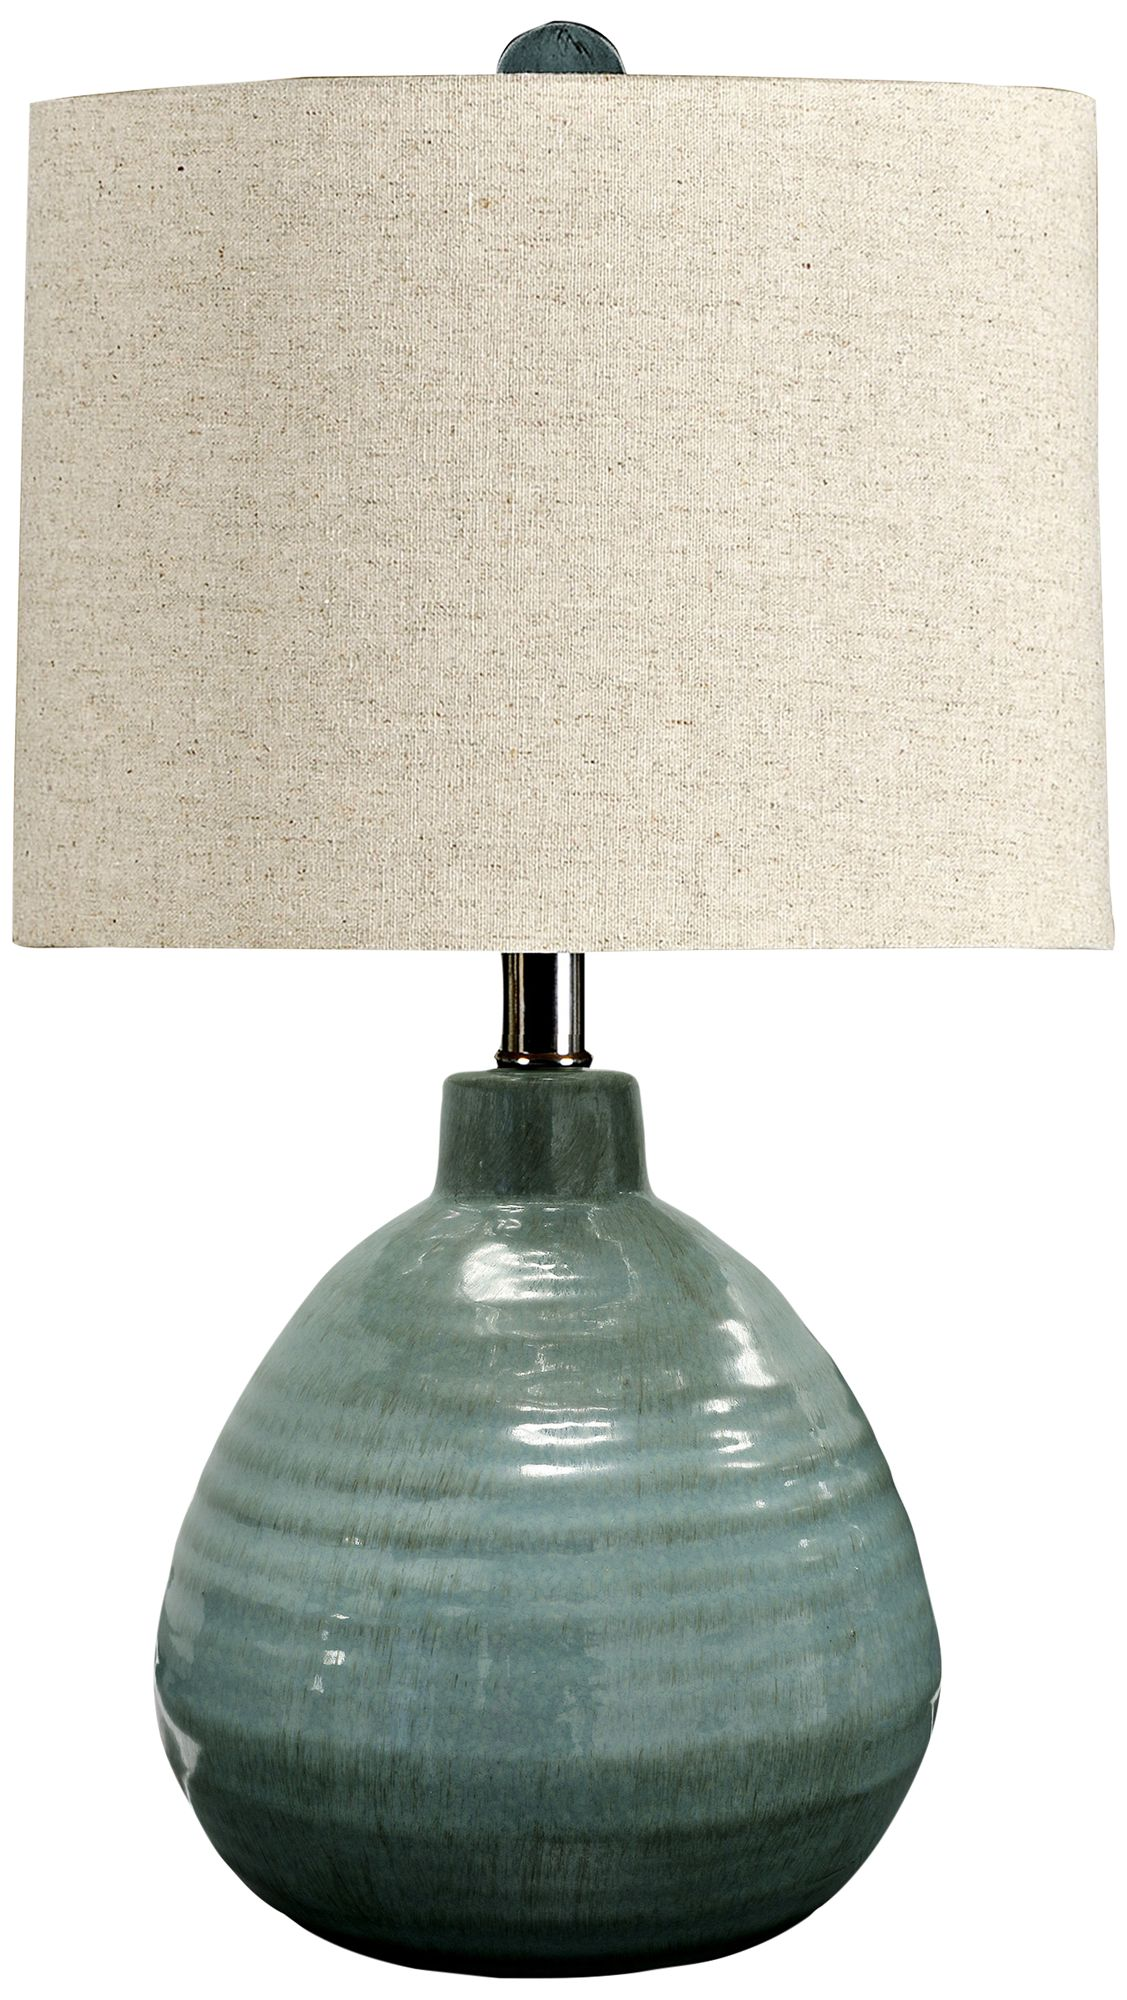 Turquoise green ceramic jar table lamp x0831 lampsplus com